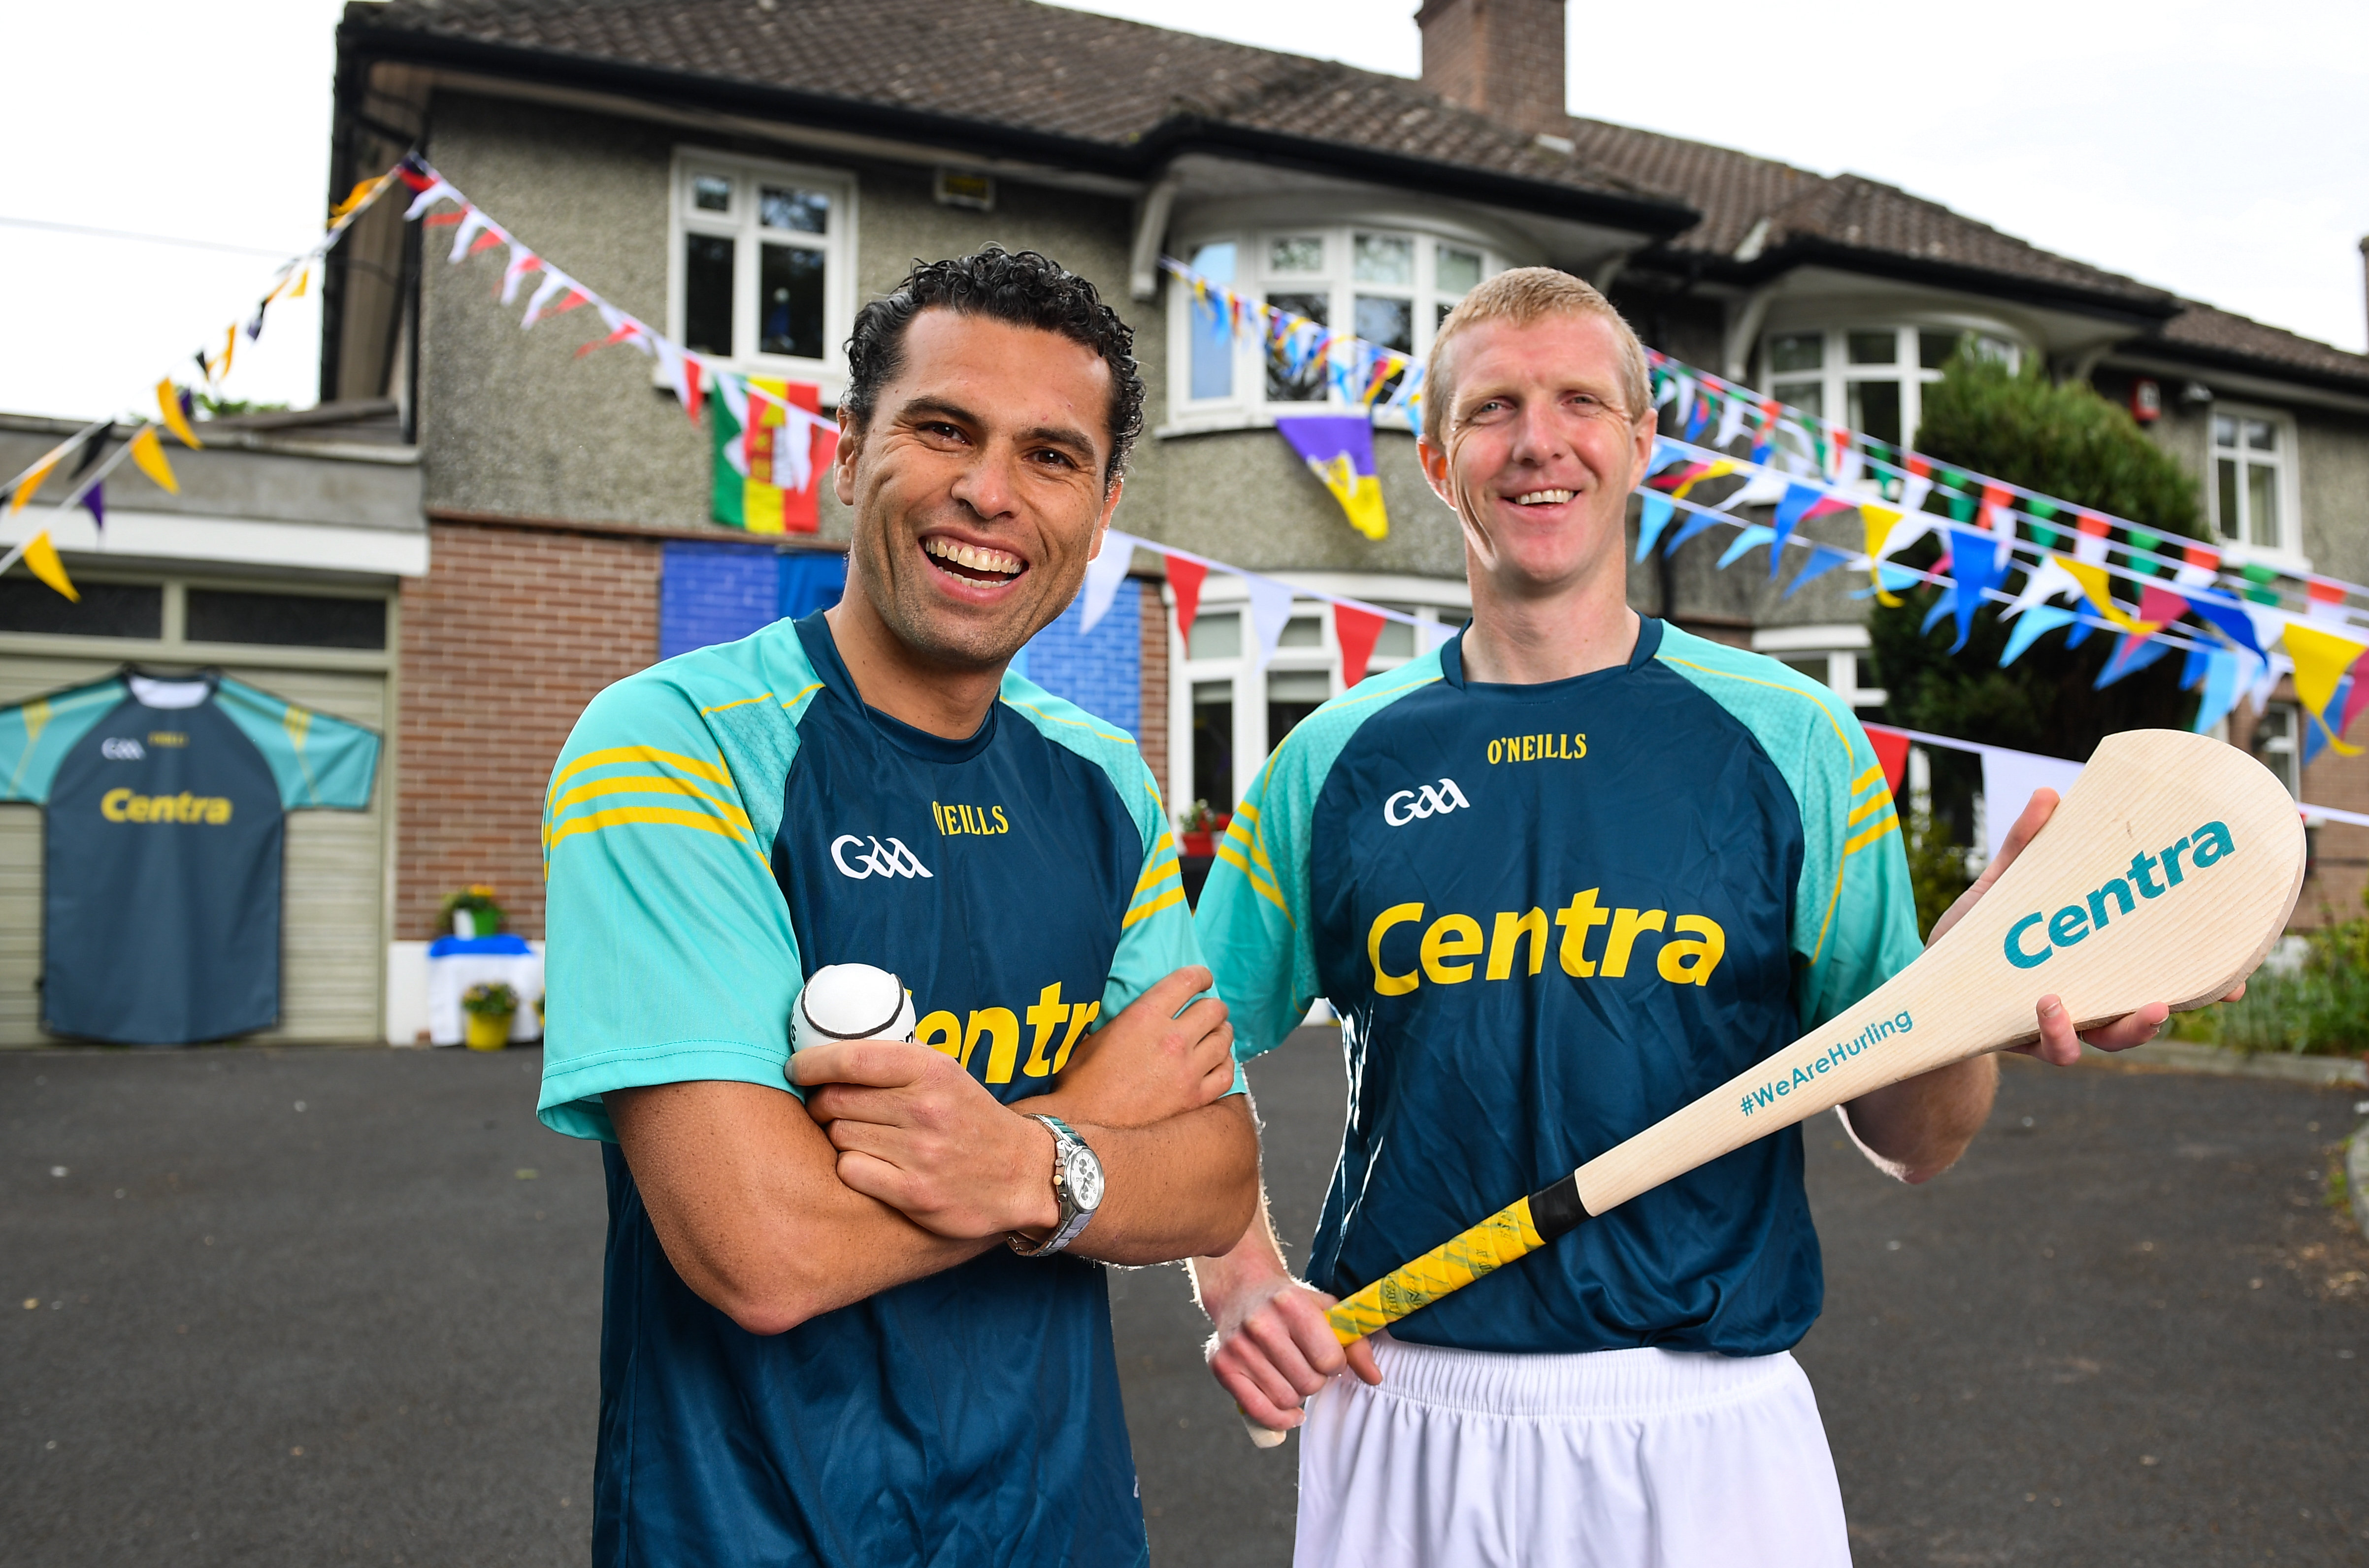 Centra Gaa Hurling launch